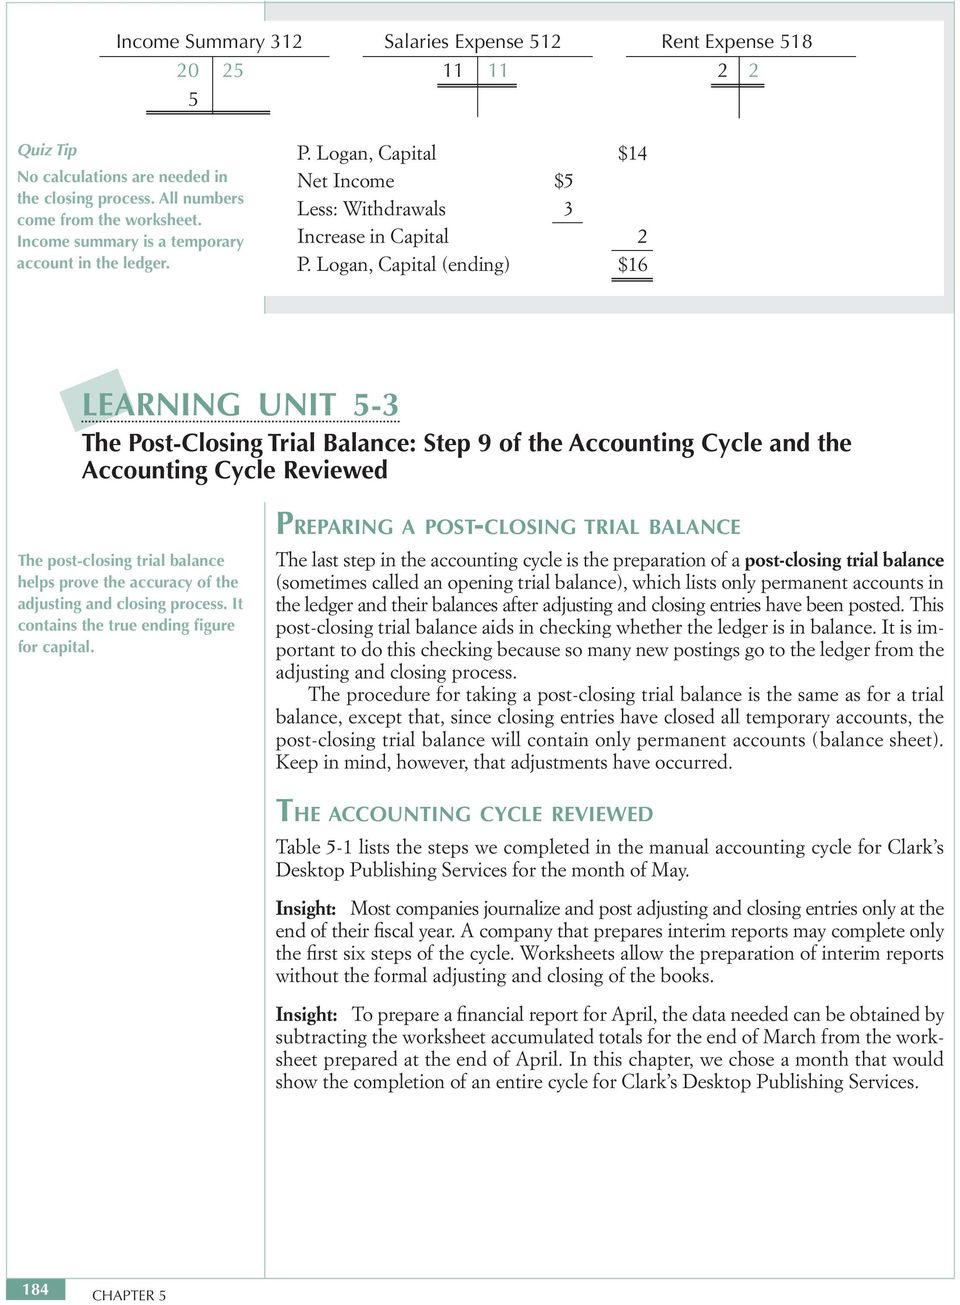 Logan, Capital (ending) $16 LEARNING UNIT 5-3 The Post-Closing Trial Balance: Step 9 of the Accounting Cycle and the Accounting Cycle Reviewed PREPARING A POST-CLOSING TRIAL BALANCE The post-closing